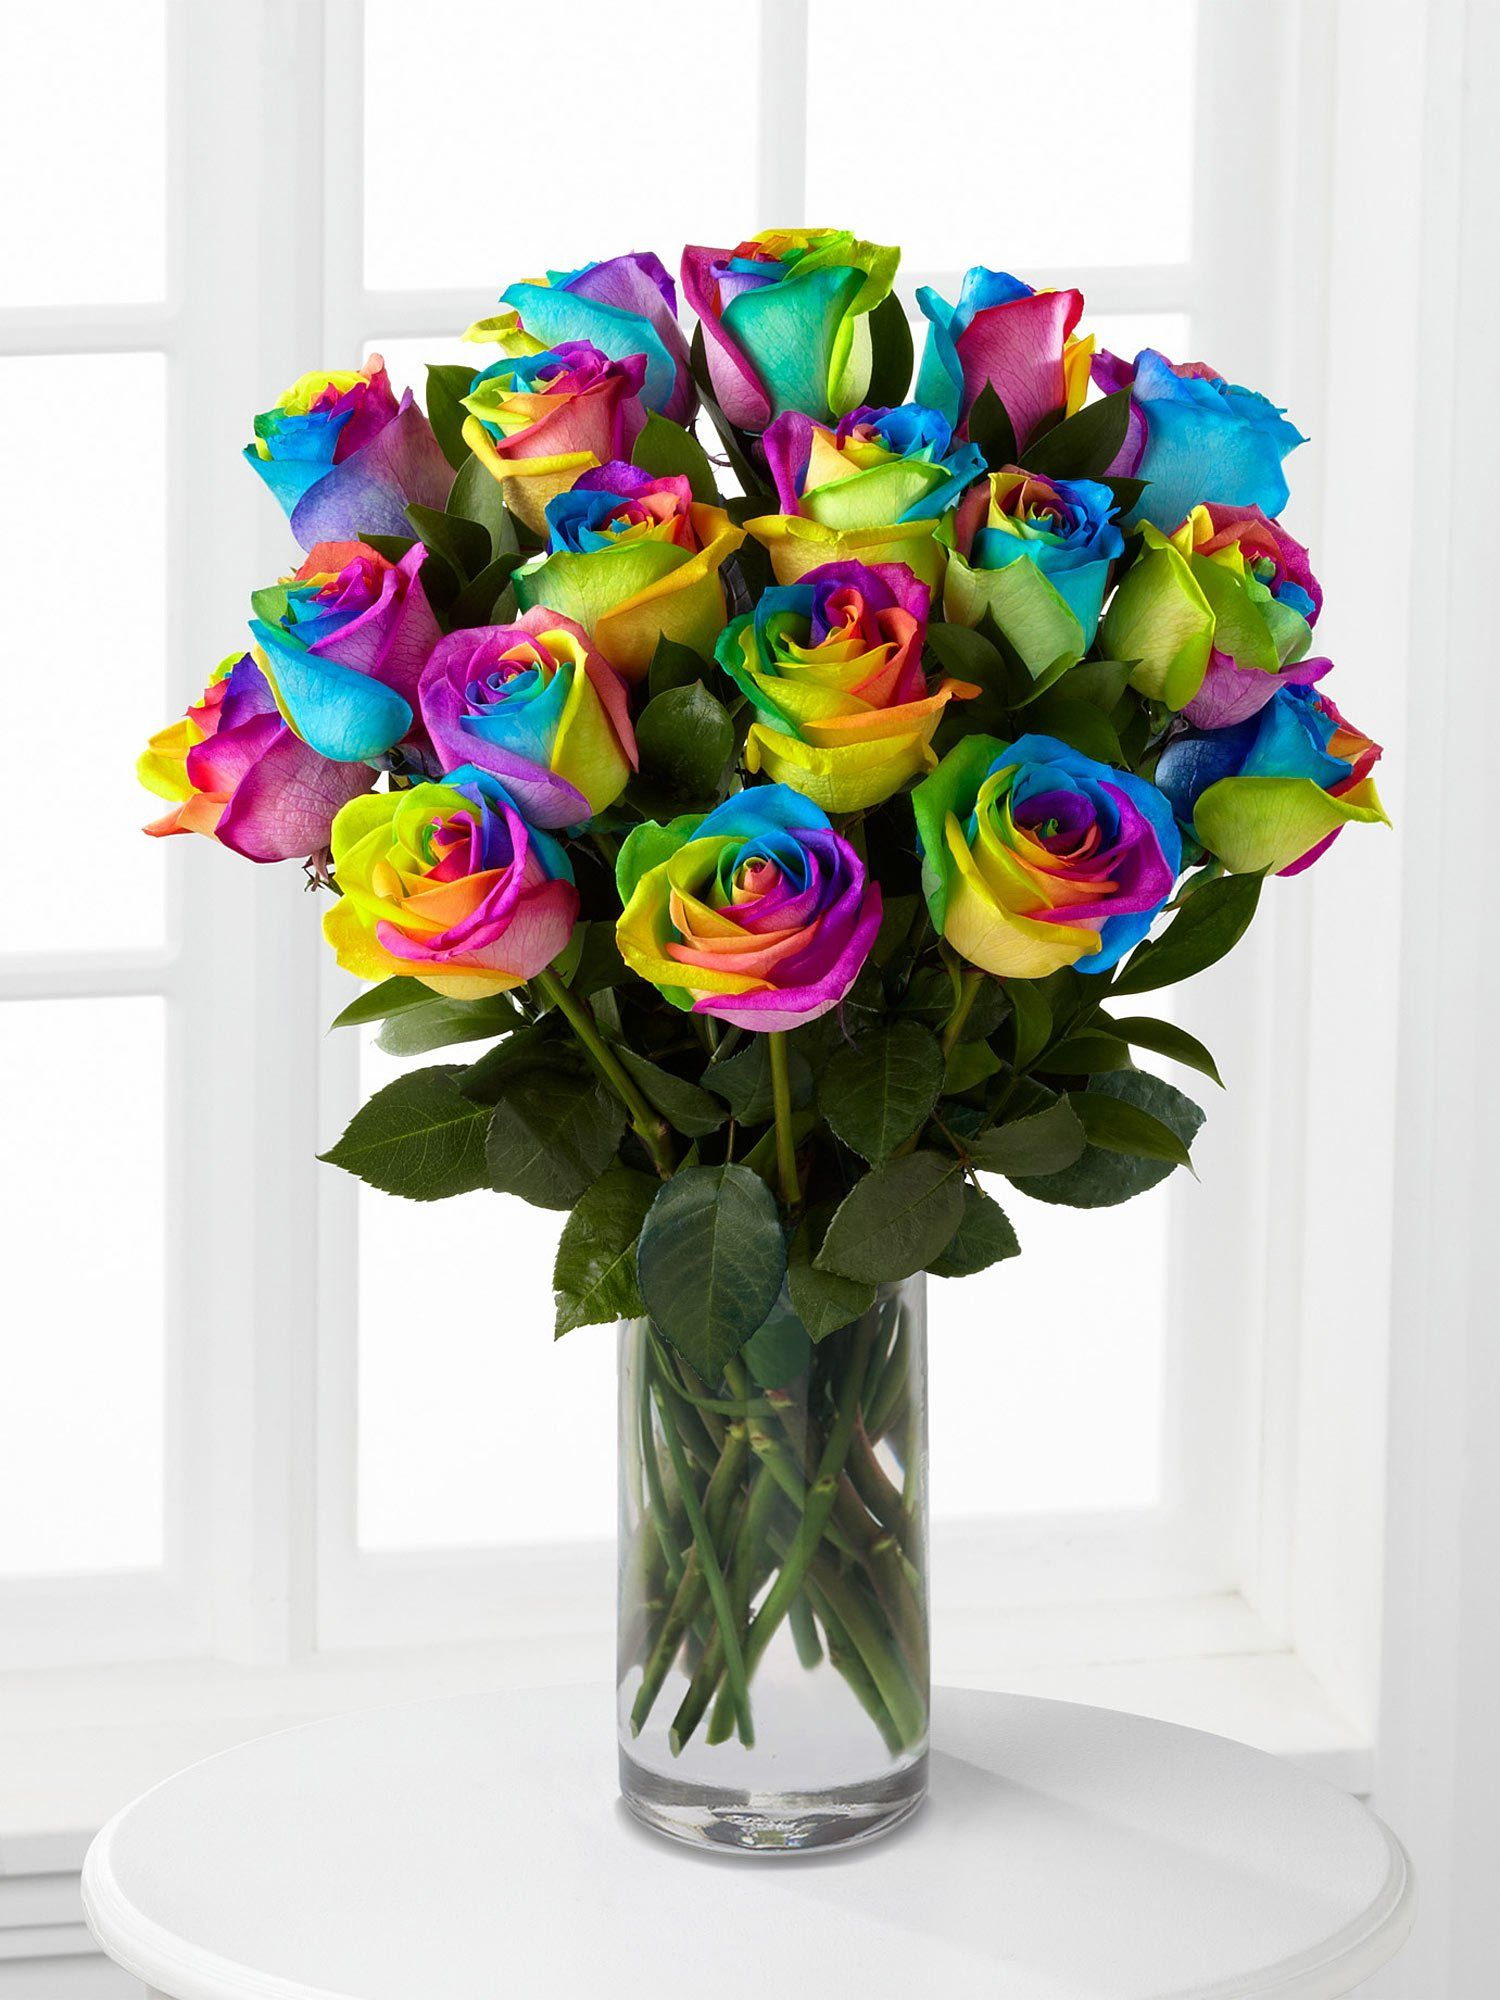 Rainbow Roses Vase - Interflora - Every woman deserves flowers like these at some point in her life... #rainbowroses